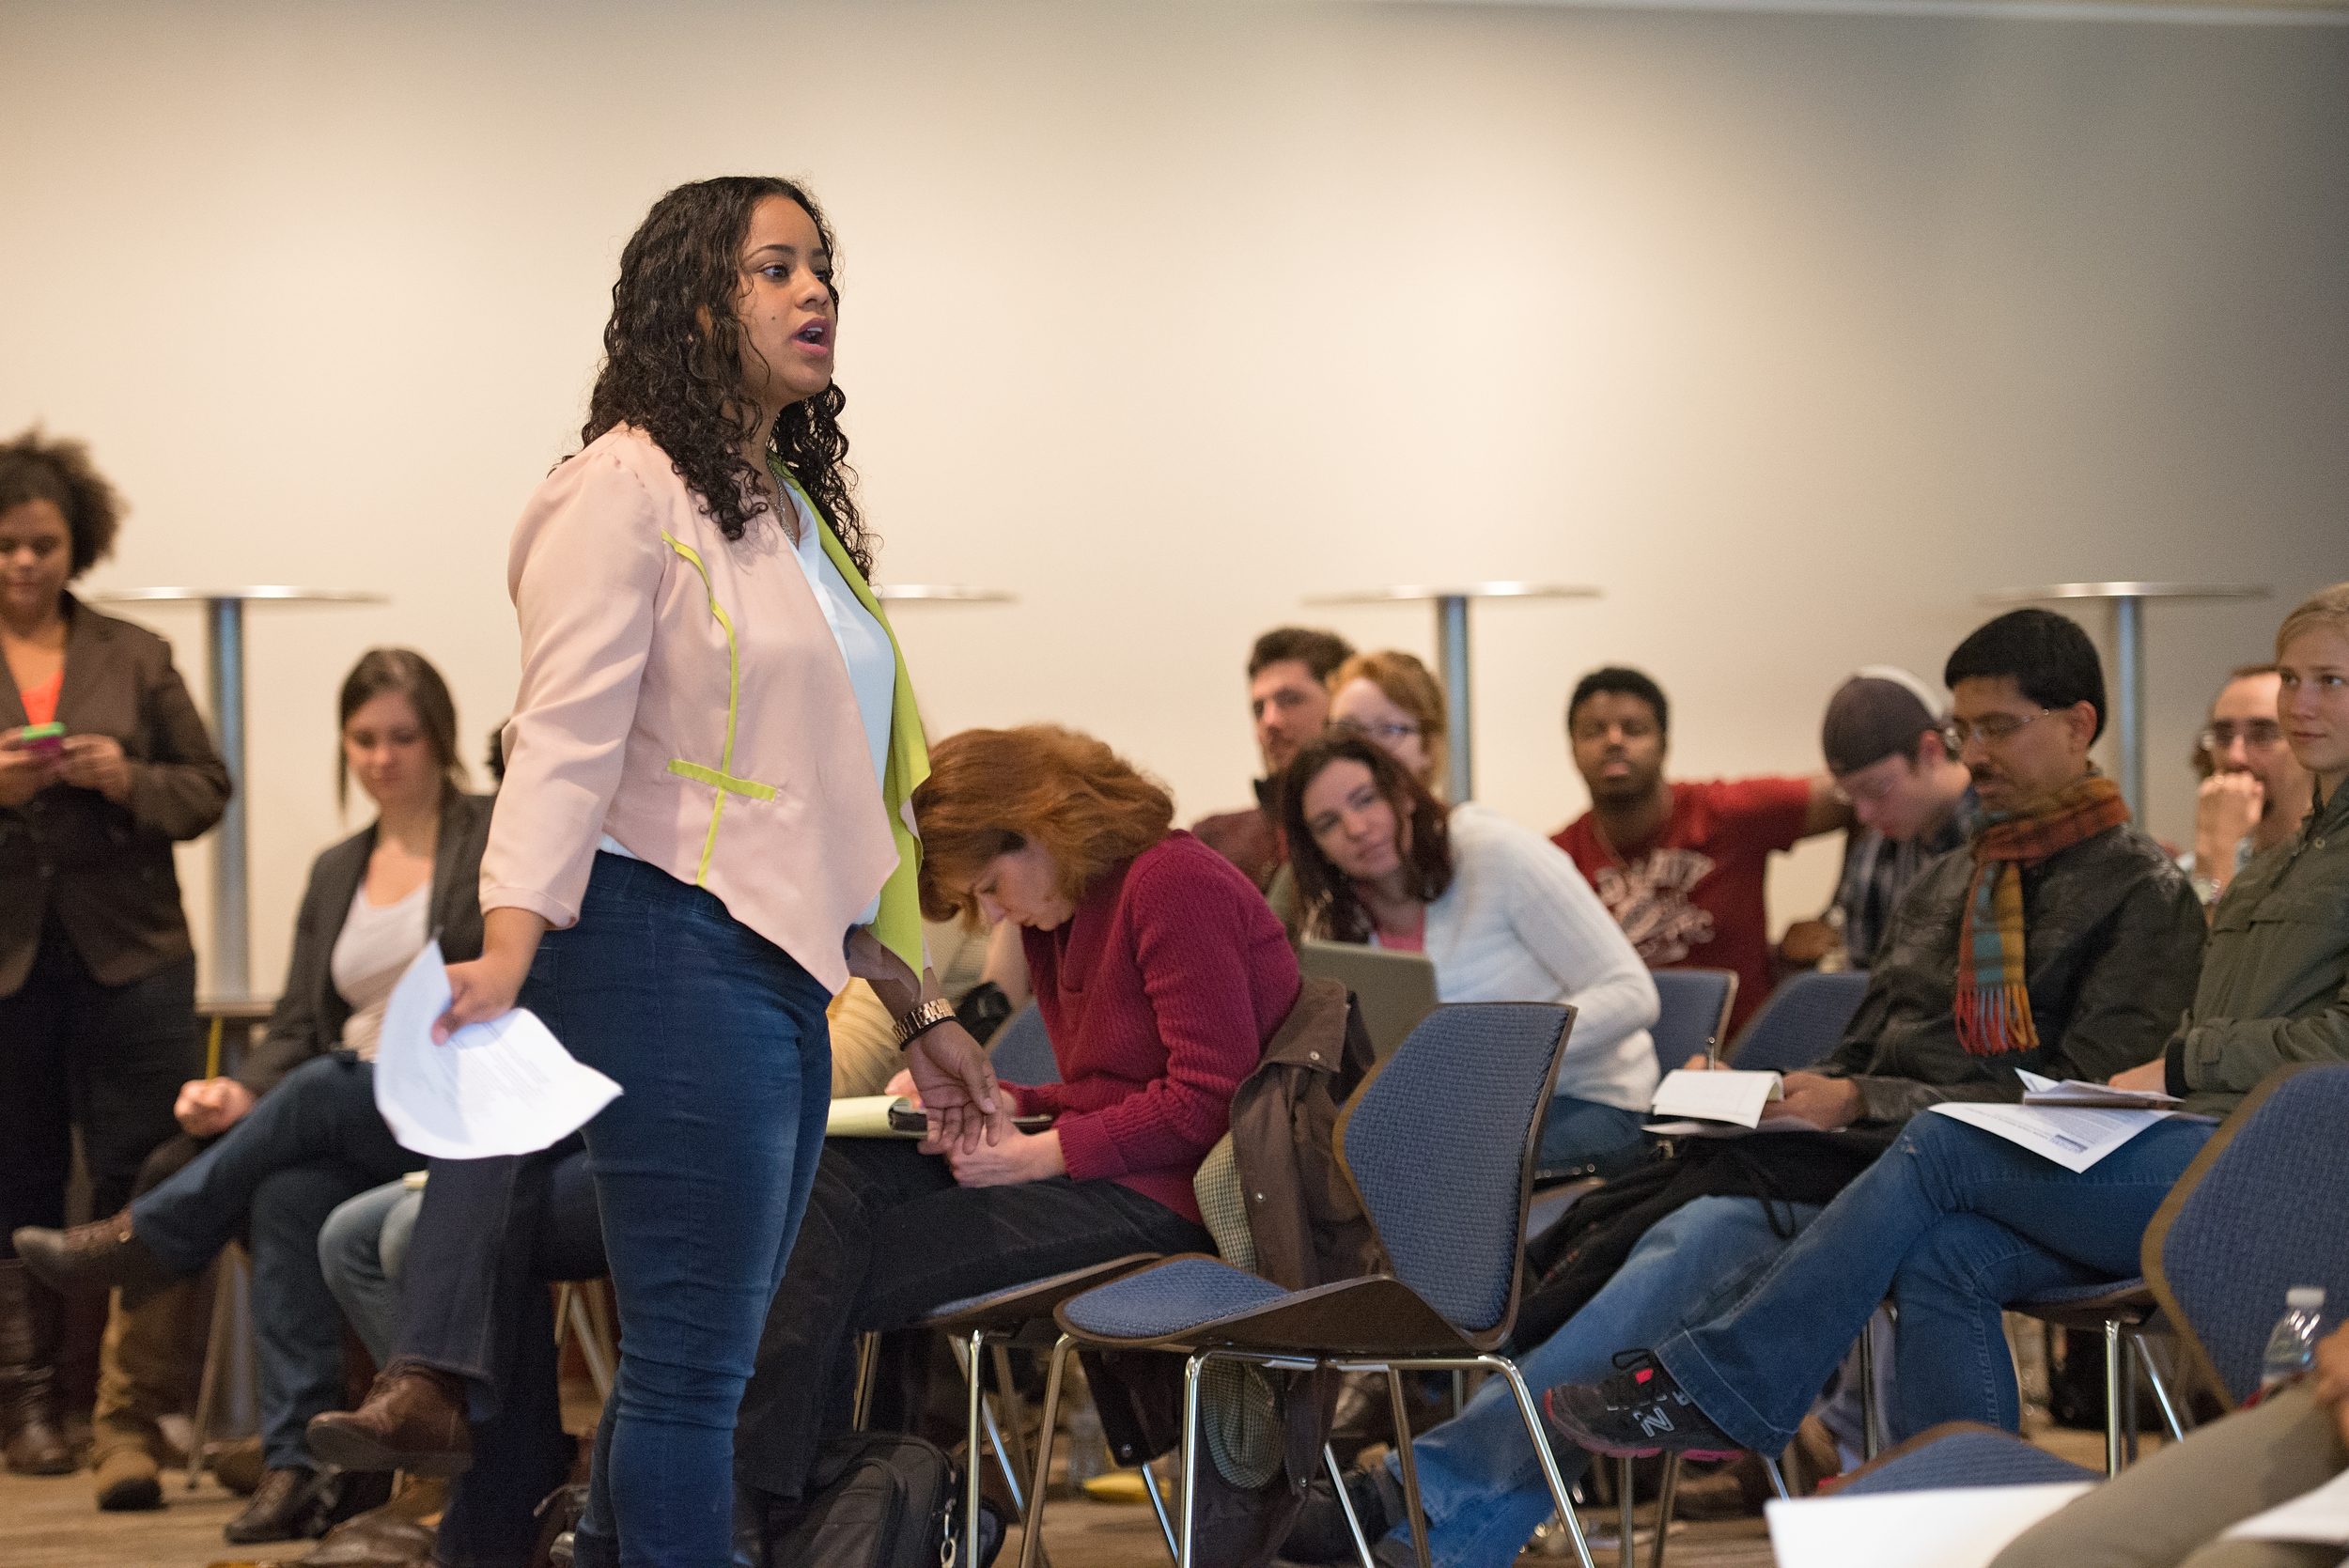 Third-year law student Avvennette Gezahan addresses the crowd at a 'Know Your Rights' workshop in October 2014. (Photo by Saint Louis University)